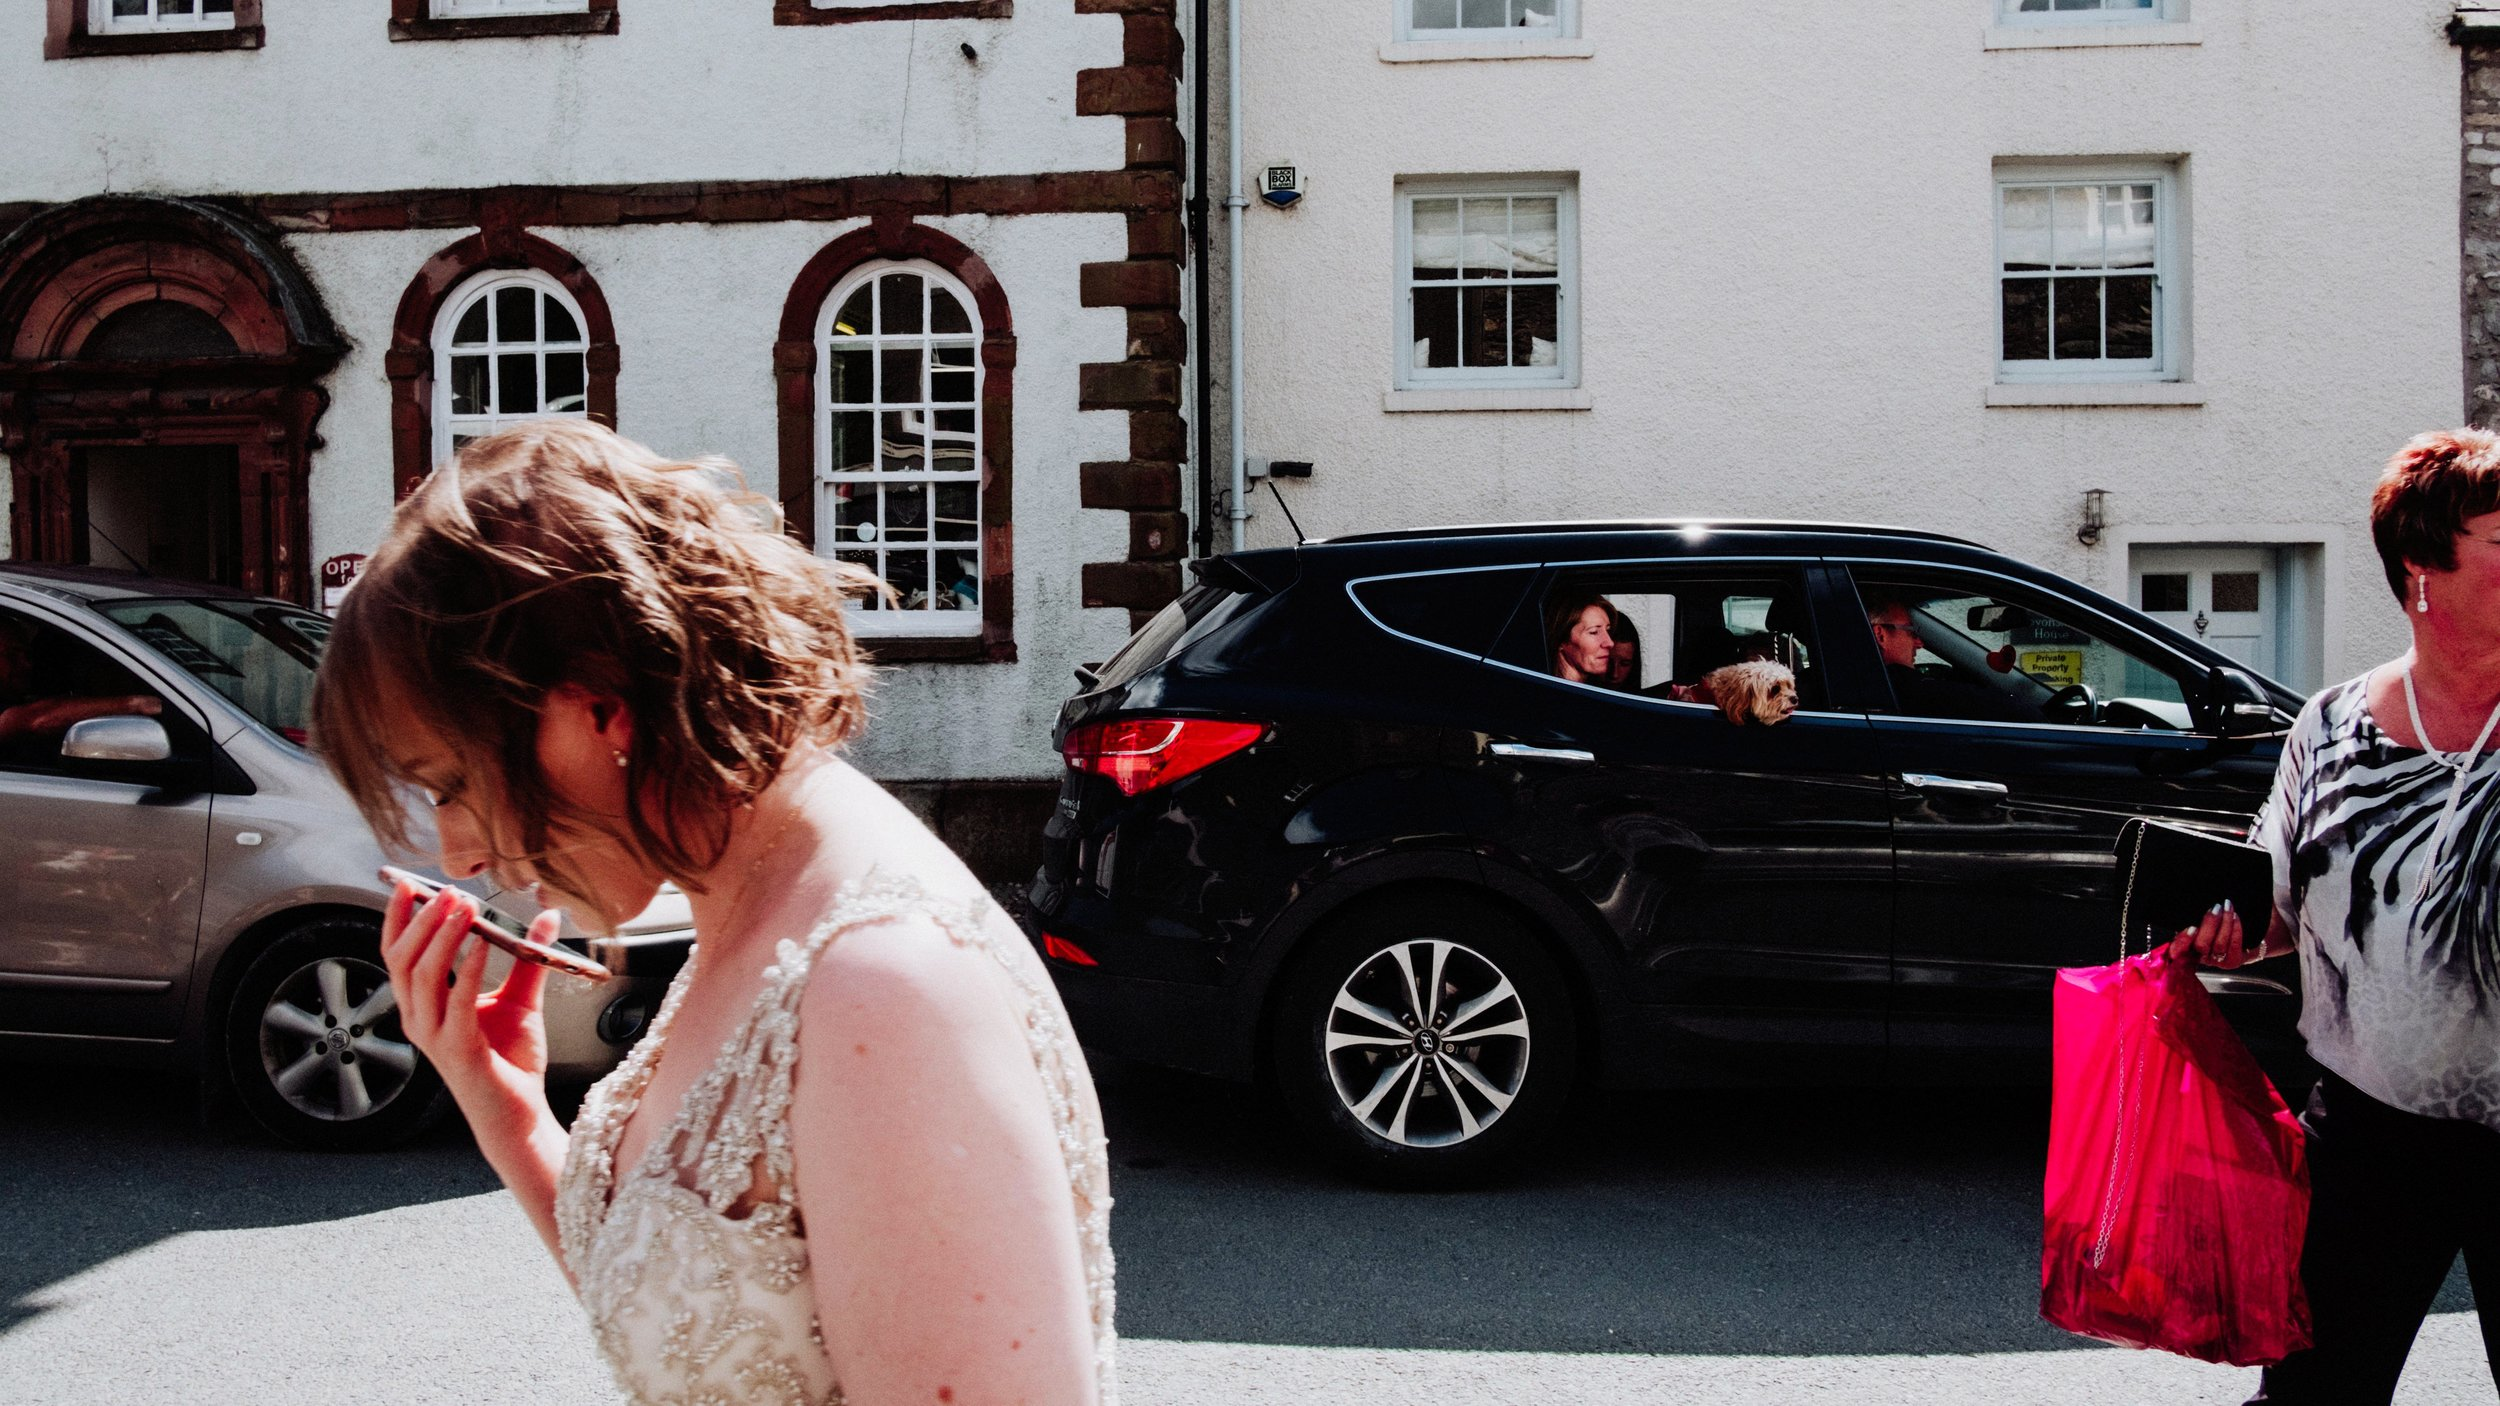 relaxed lake district wedding 504.jpg